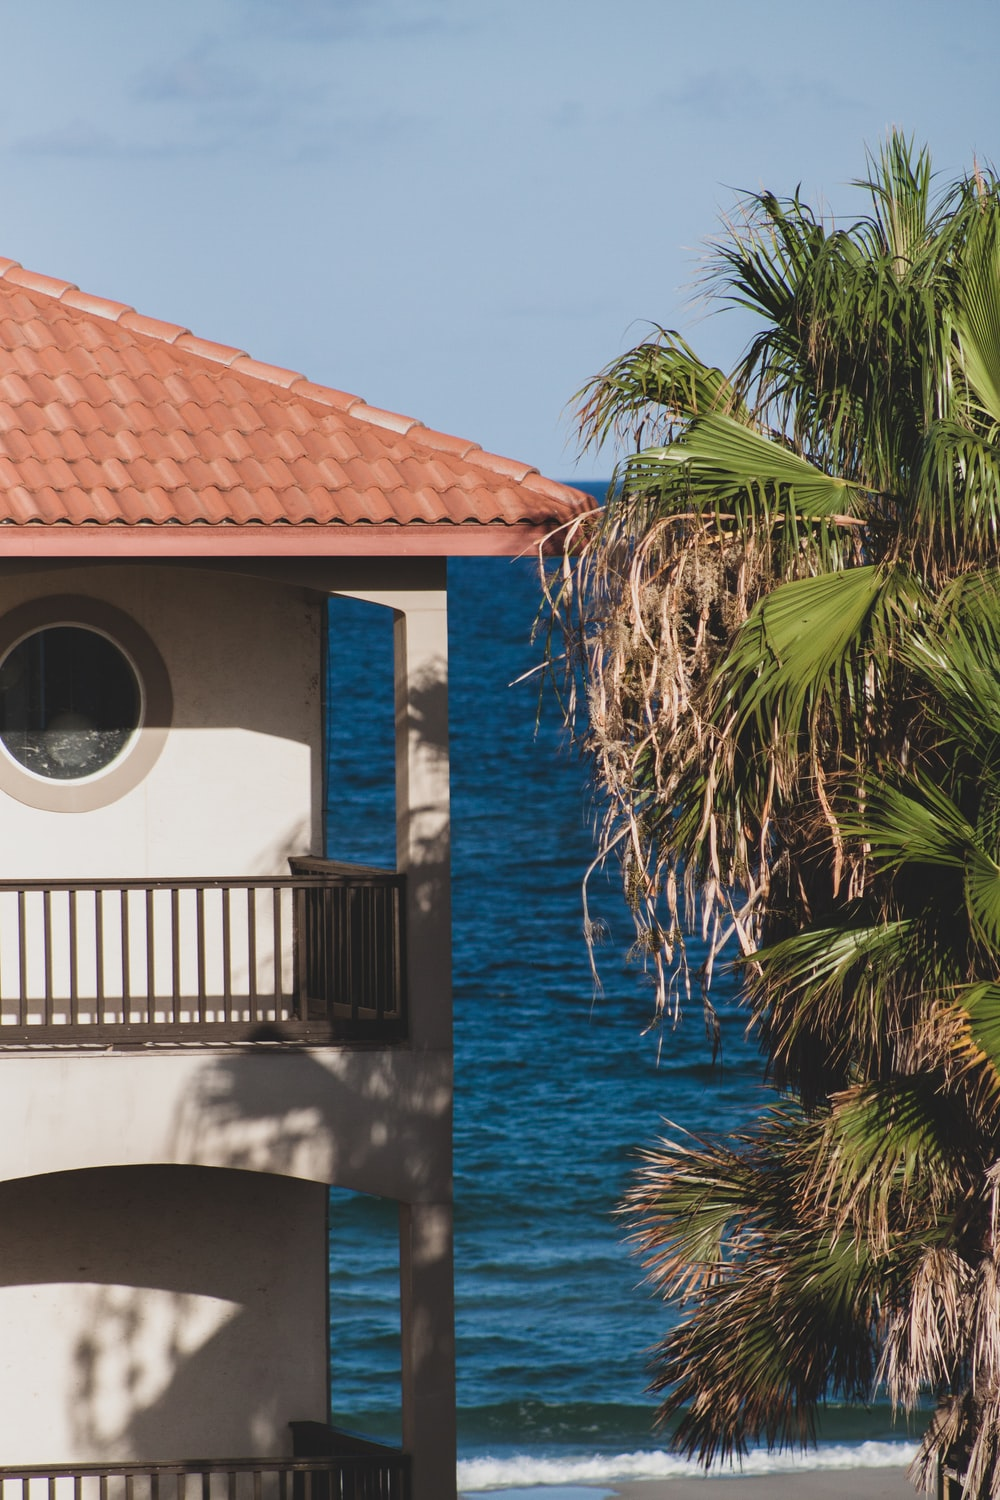 building with balcony and porch beside tree in front of the sea during day